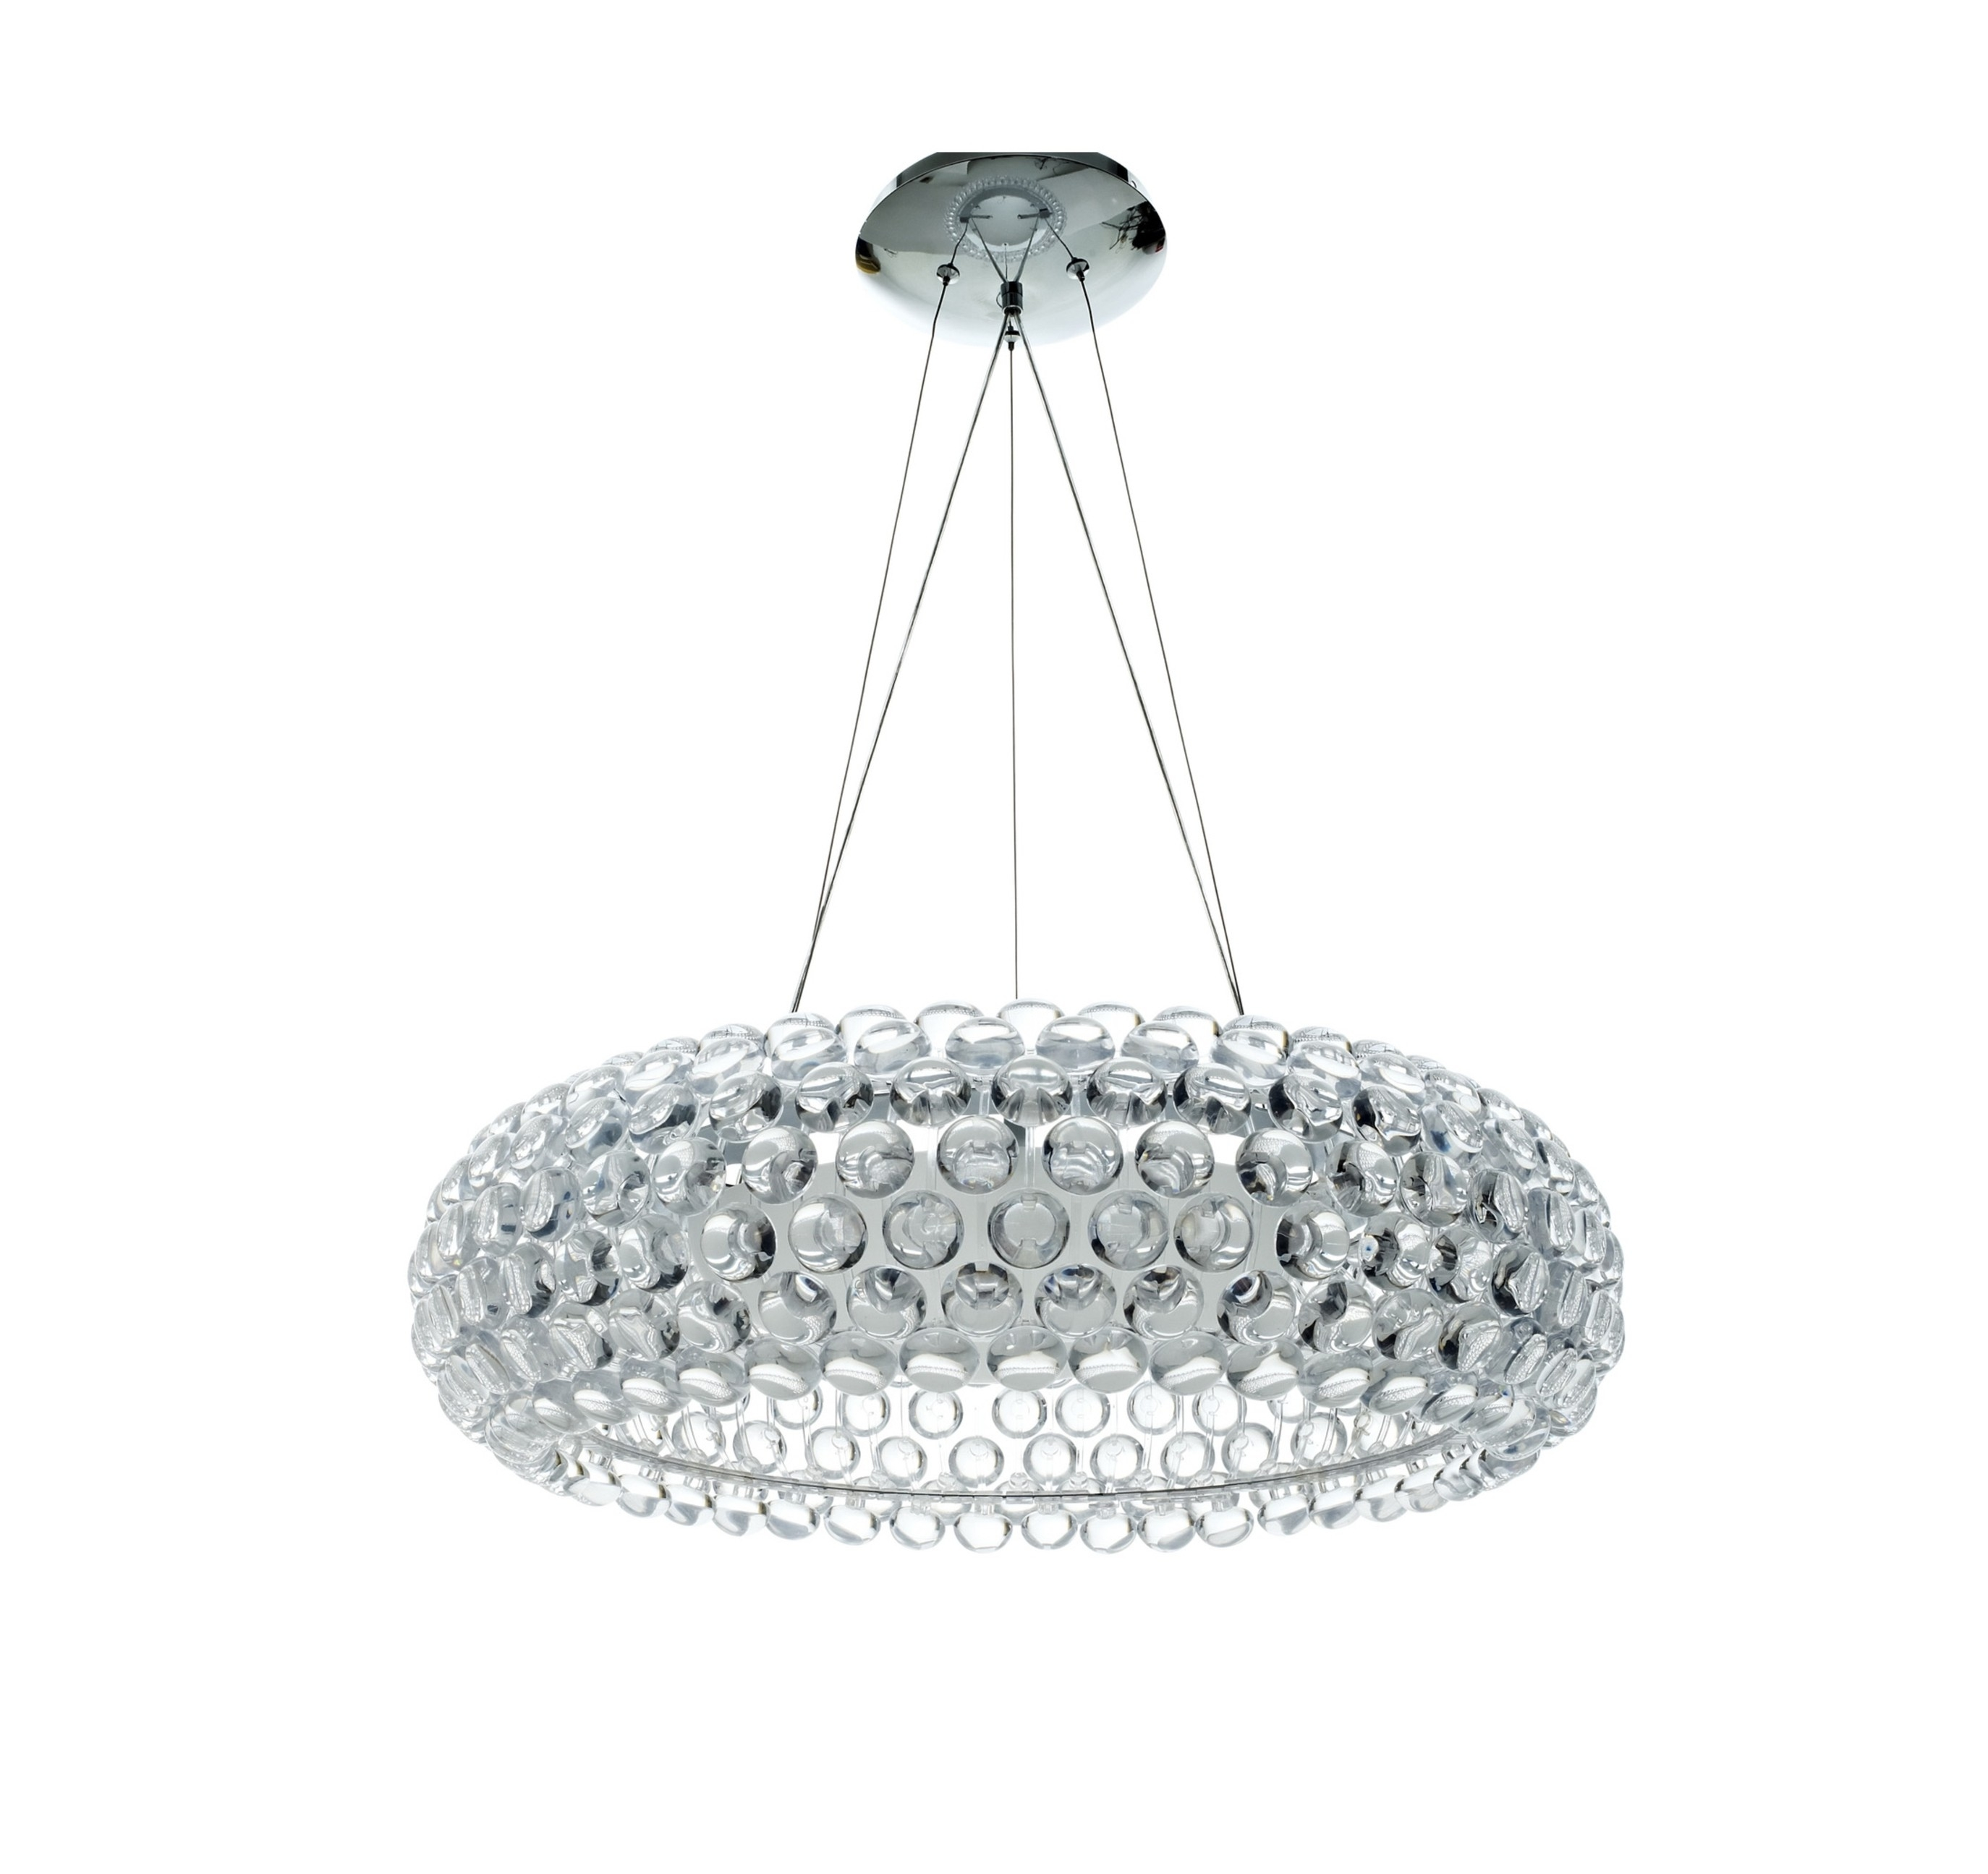 12 Best Of Small Glass Chandeliers